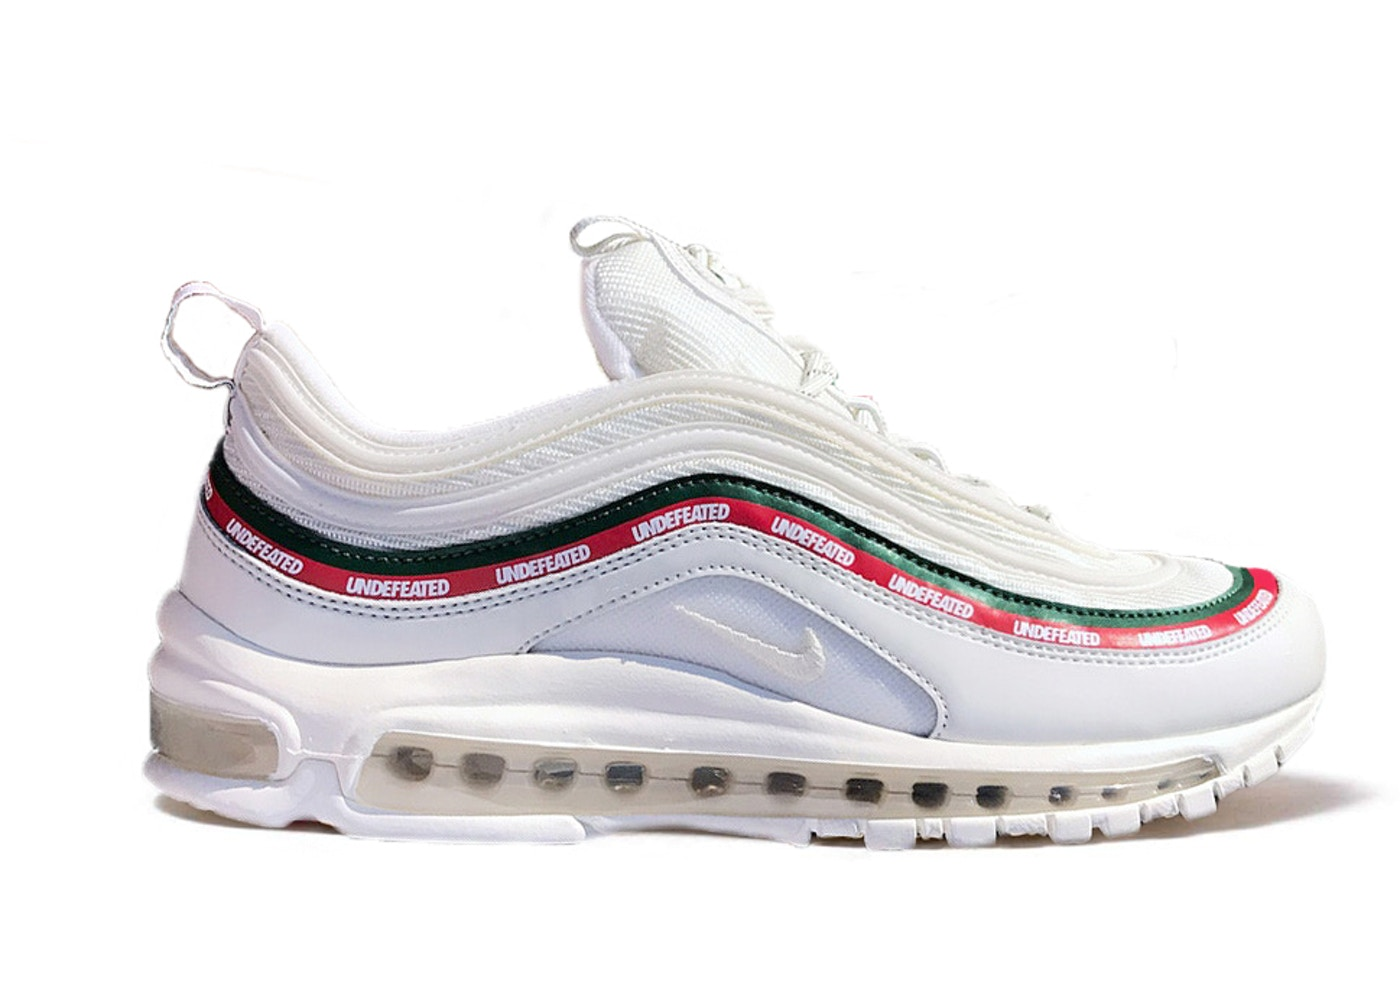 brand new ff8f3 13154 Air Max 97 UNDFTD White - AJ1986-100